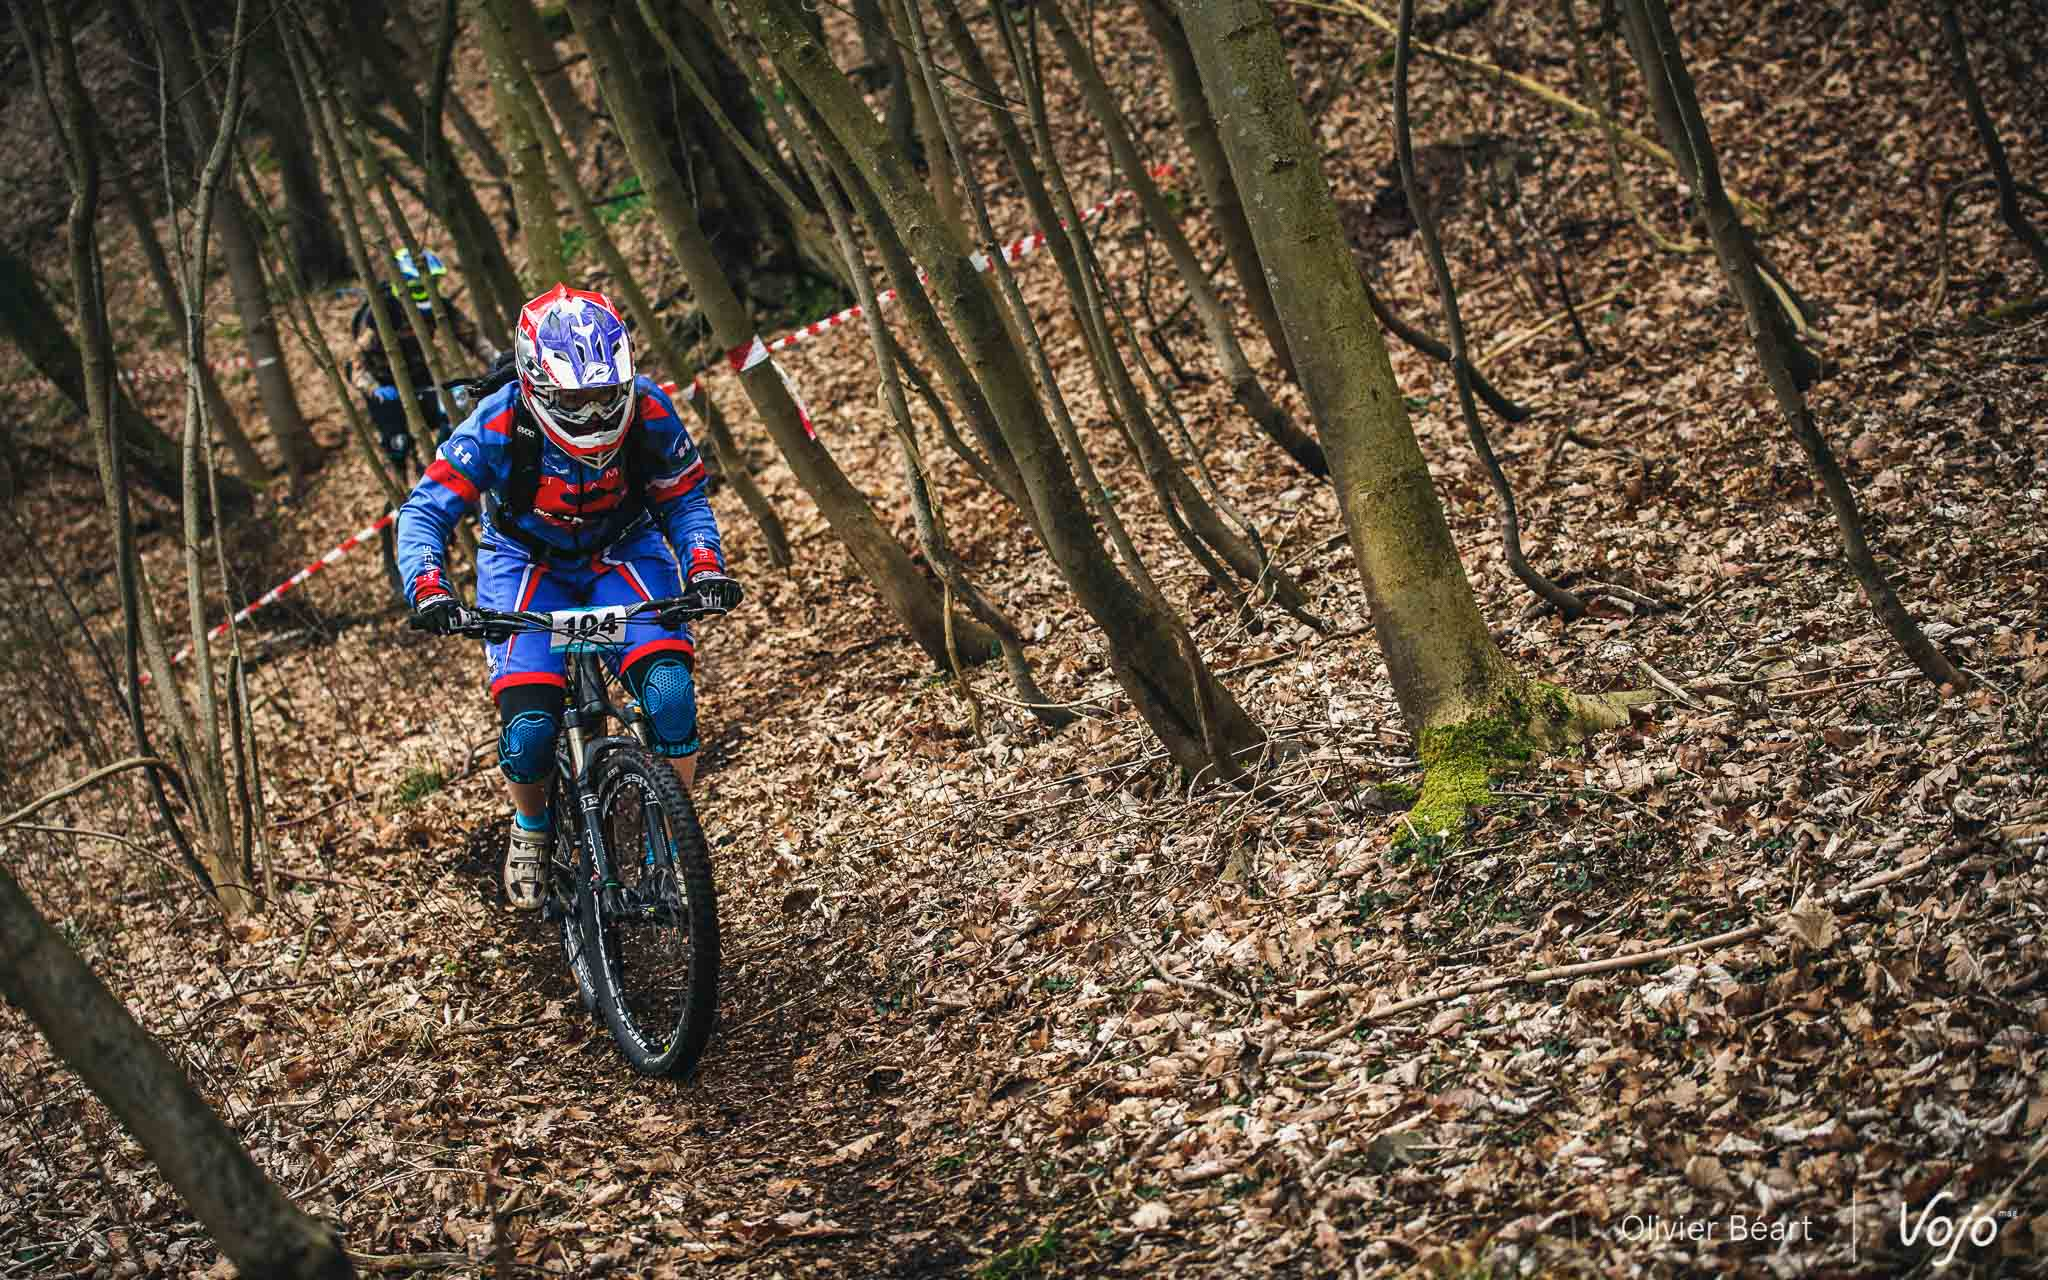 Belgian_Enduro_Cup_Chaudfontaine_2016_Copyright_OBeart_Vojomag-7